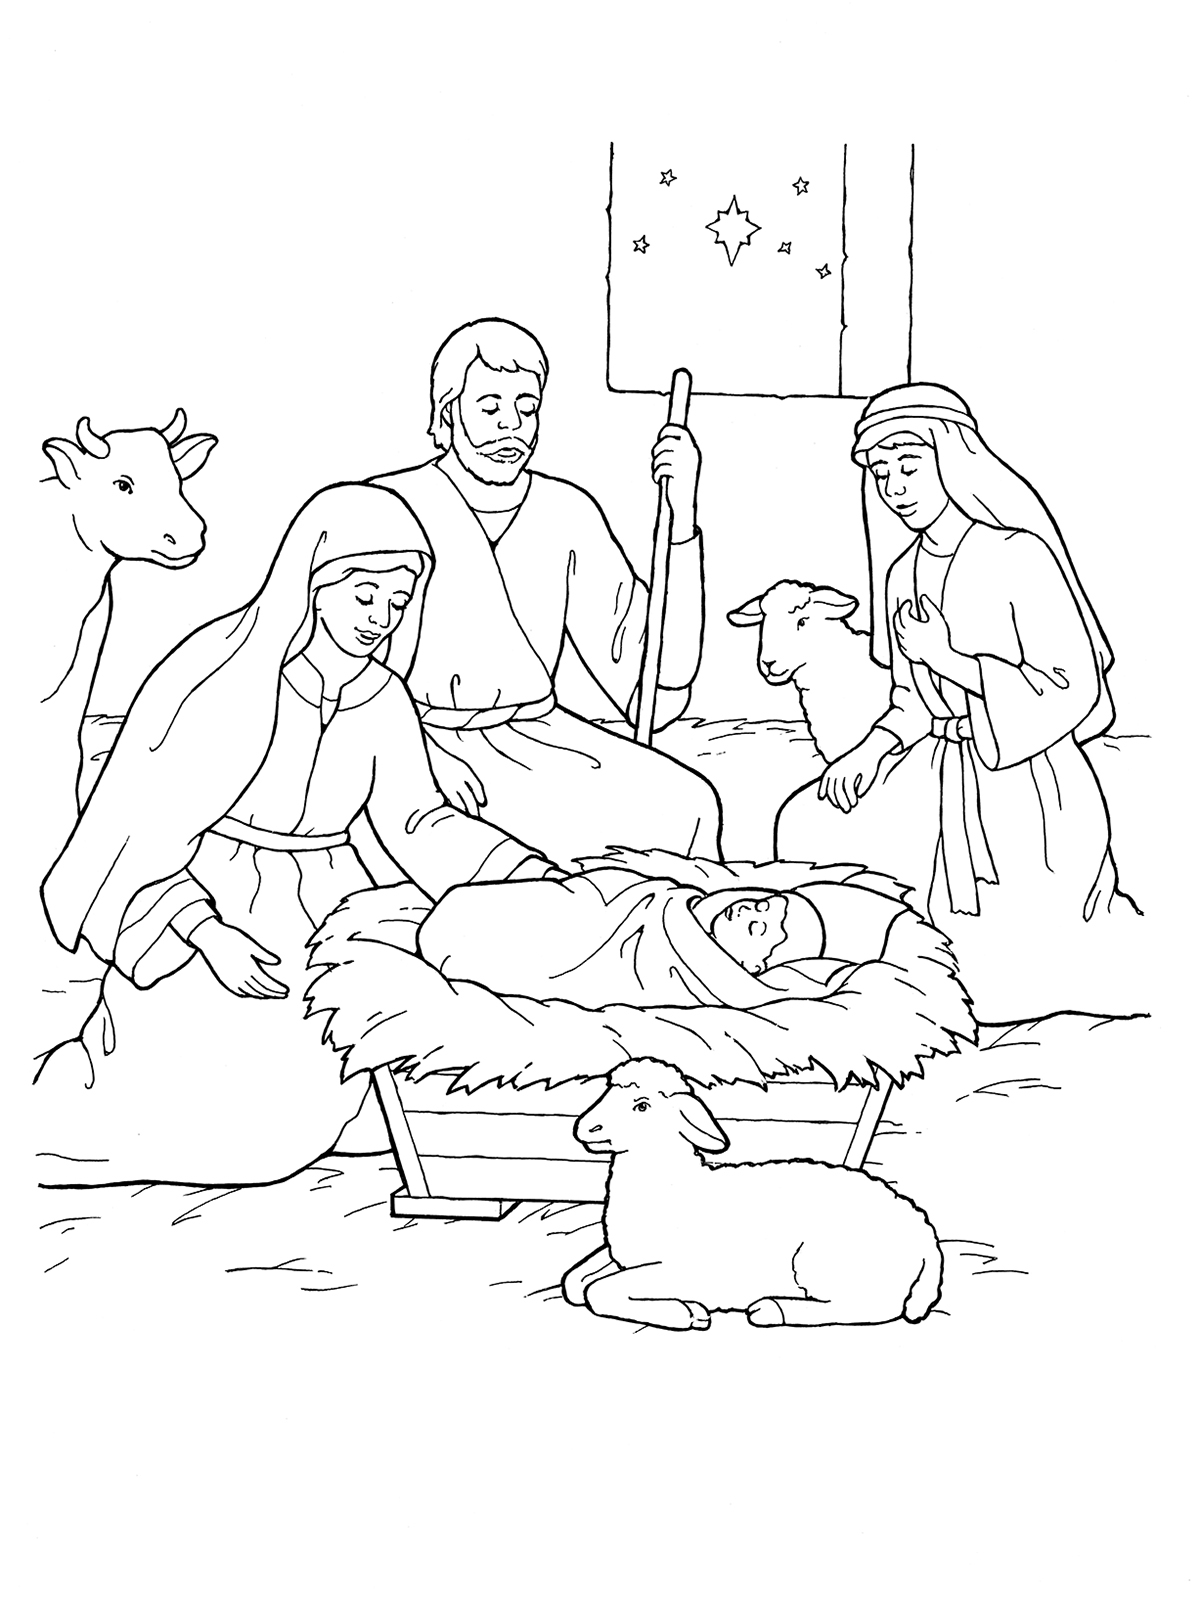 Born nativity coloring page is free download printable coloring pages - Nativity Mary Joseph Jesus And The Shepherds Christmas Coloring Pages